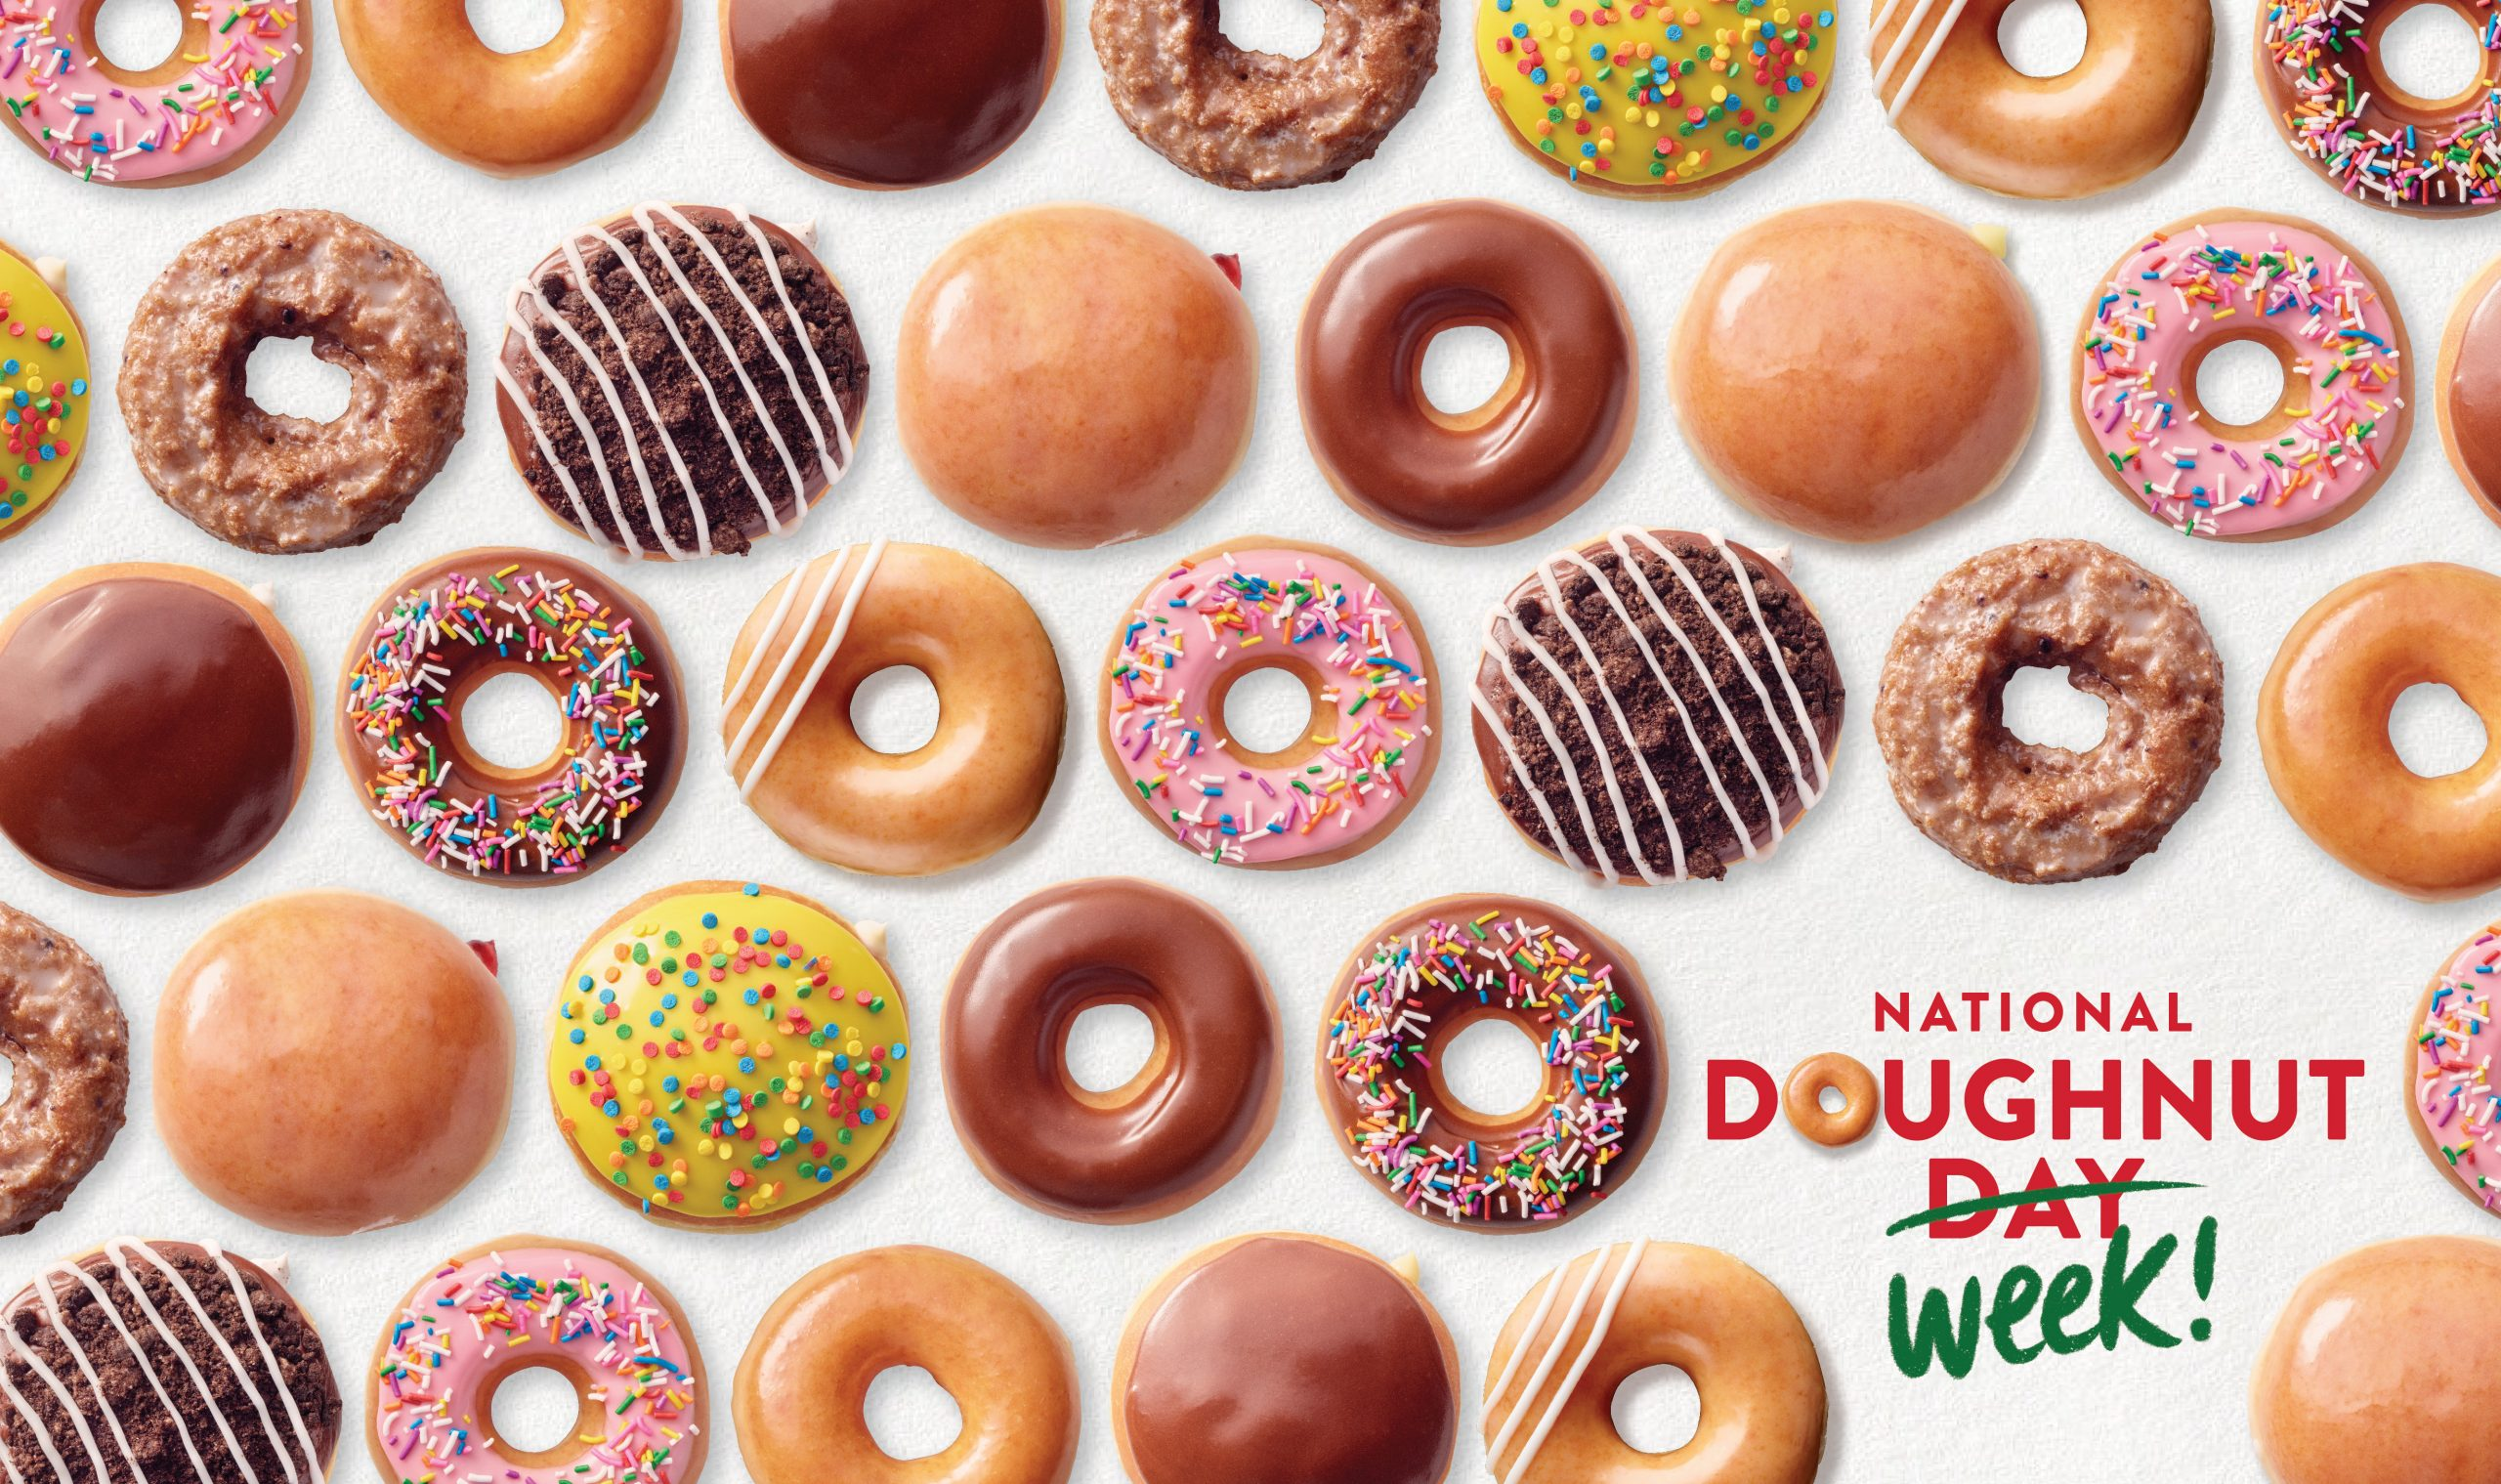 Krispy Kreme extends National Doughnut Day to National Doughnut Week, offering fans any doughnut of choice for FREE, no purchase necessary, June 1 through June 5